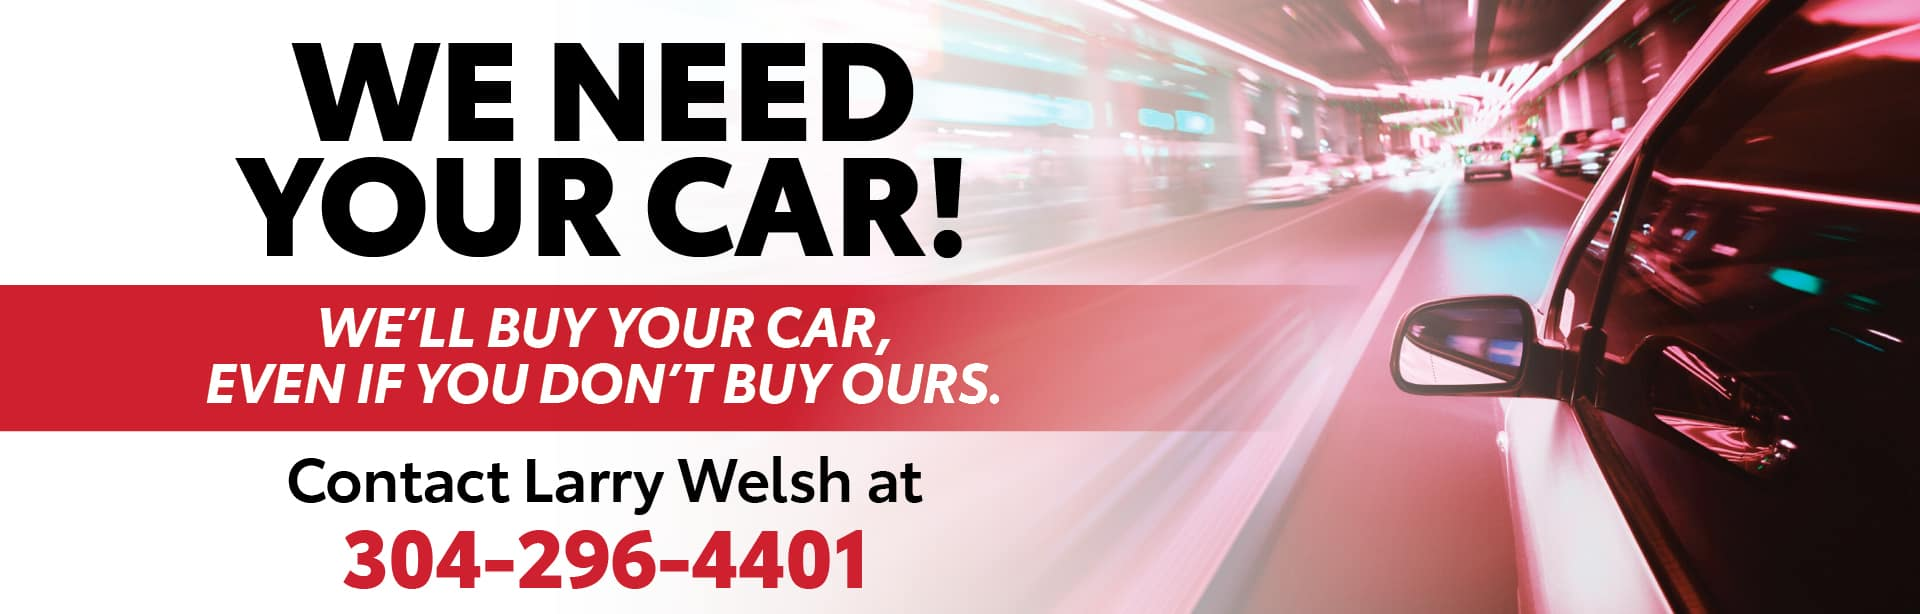 we need your car